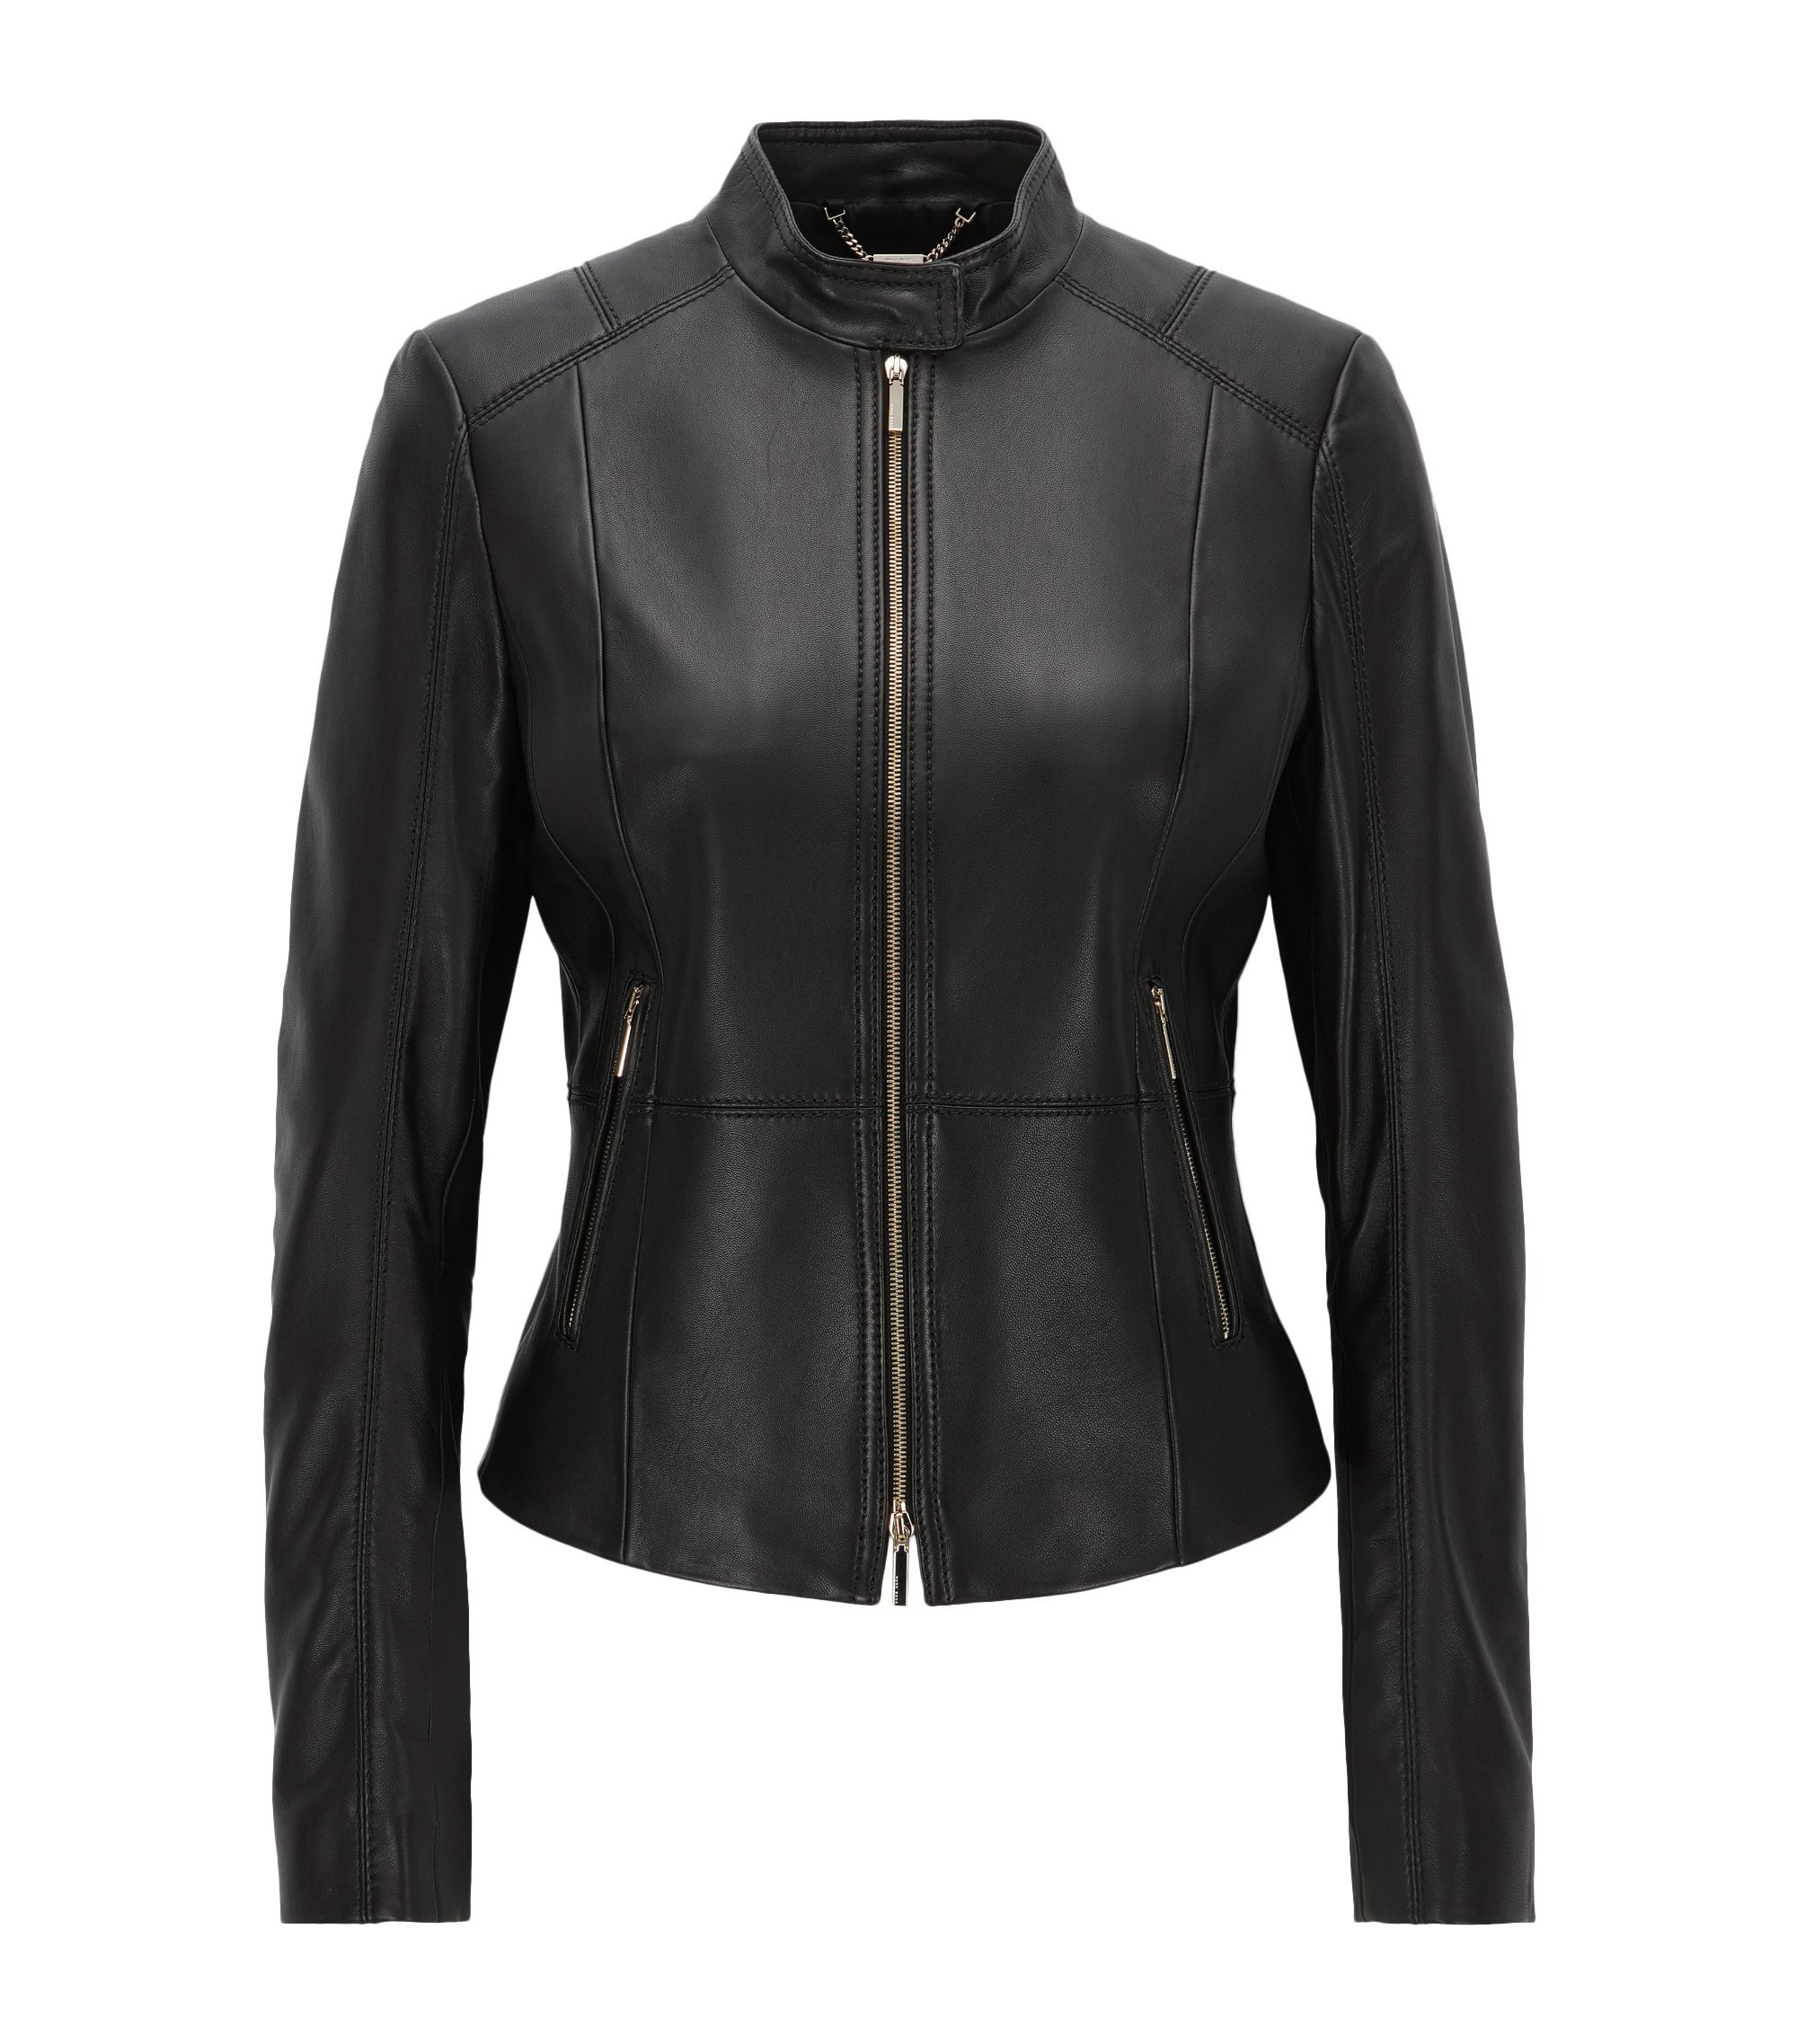 Lambskin Leather Jacket | Sammonaie, Black